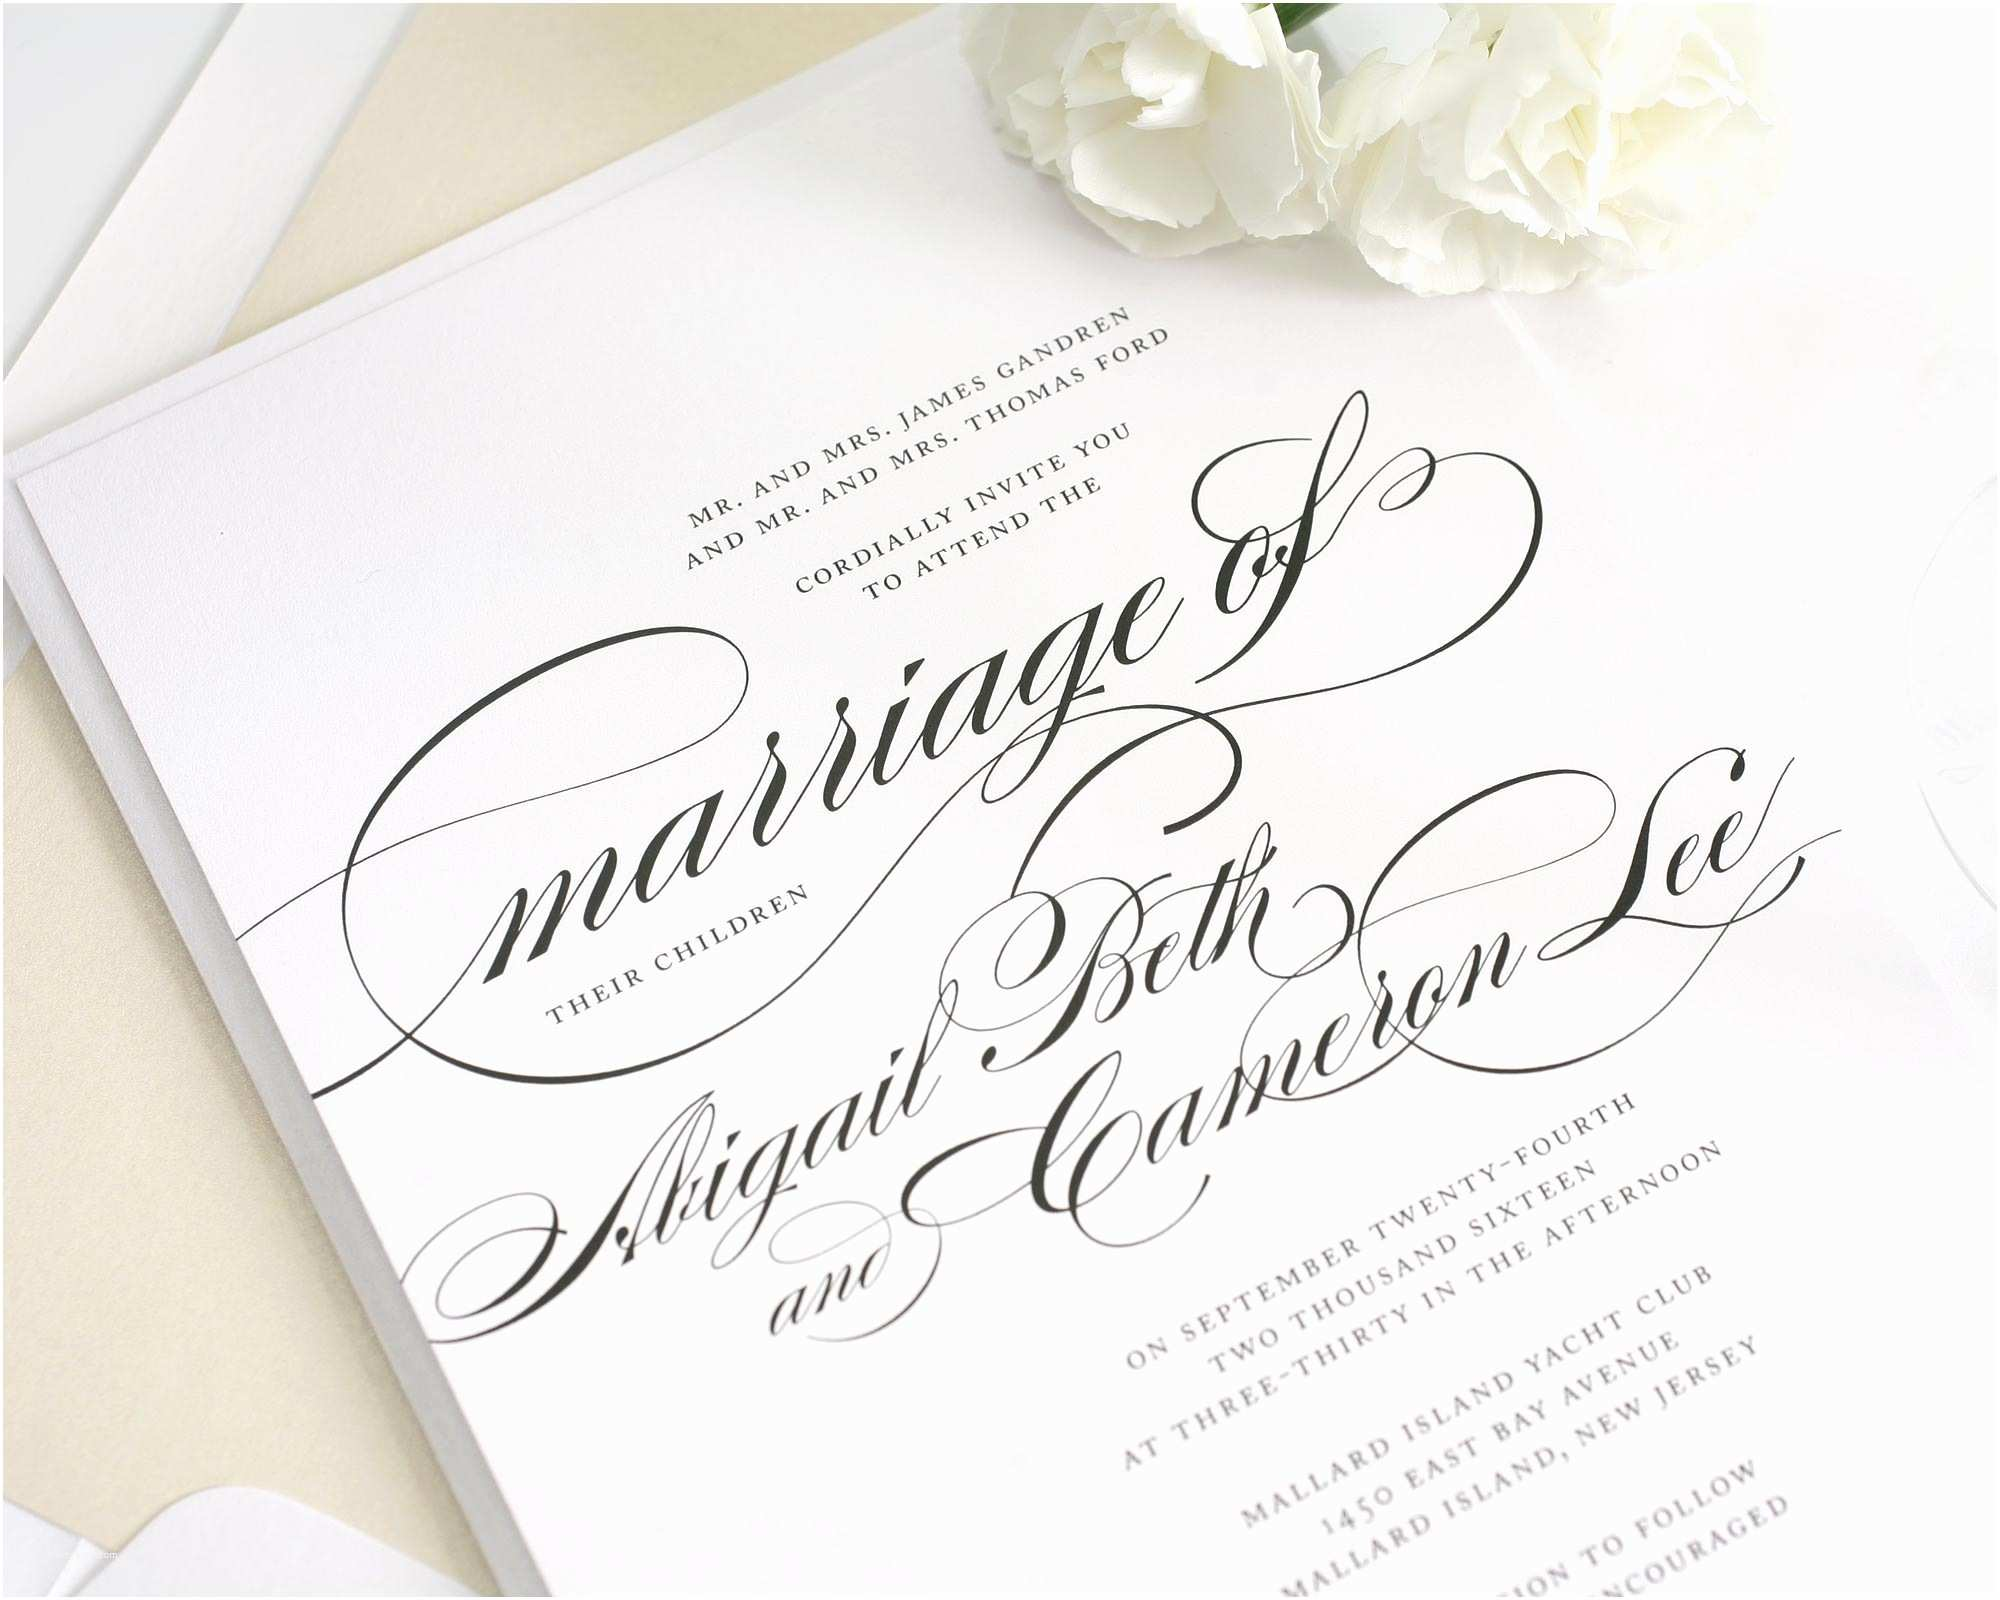 What to Include In Wedding Invitation Beautiful Wedding Invitation In Black and White with